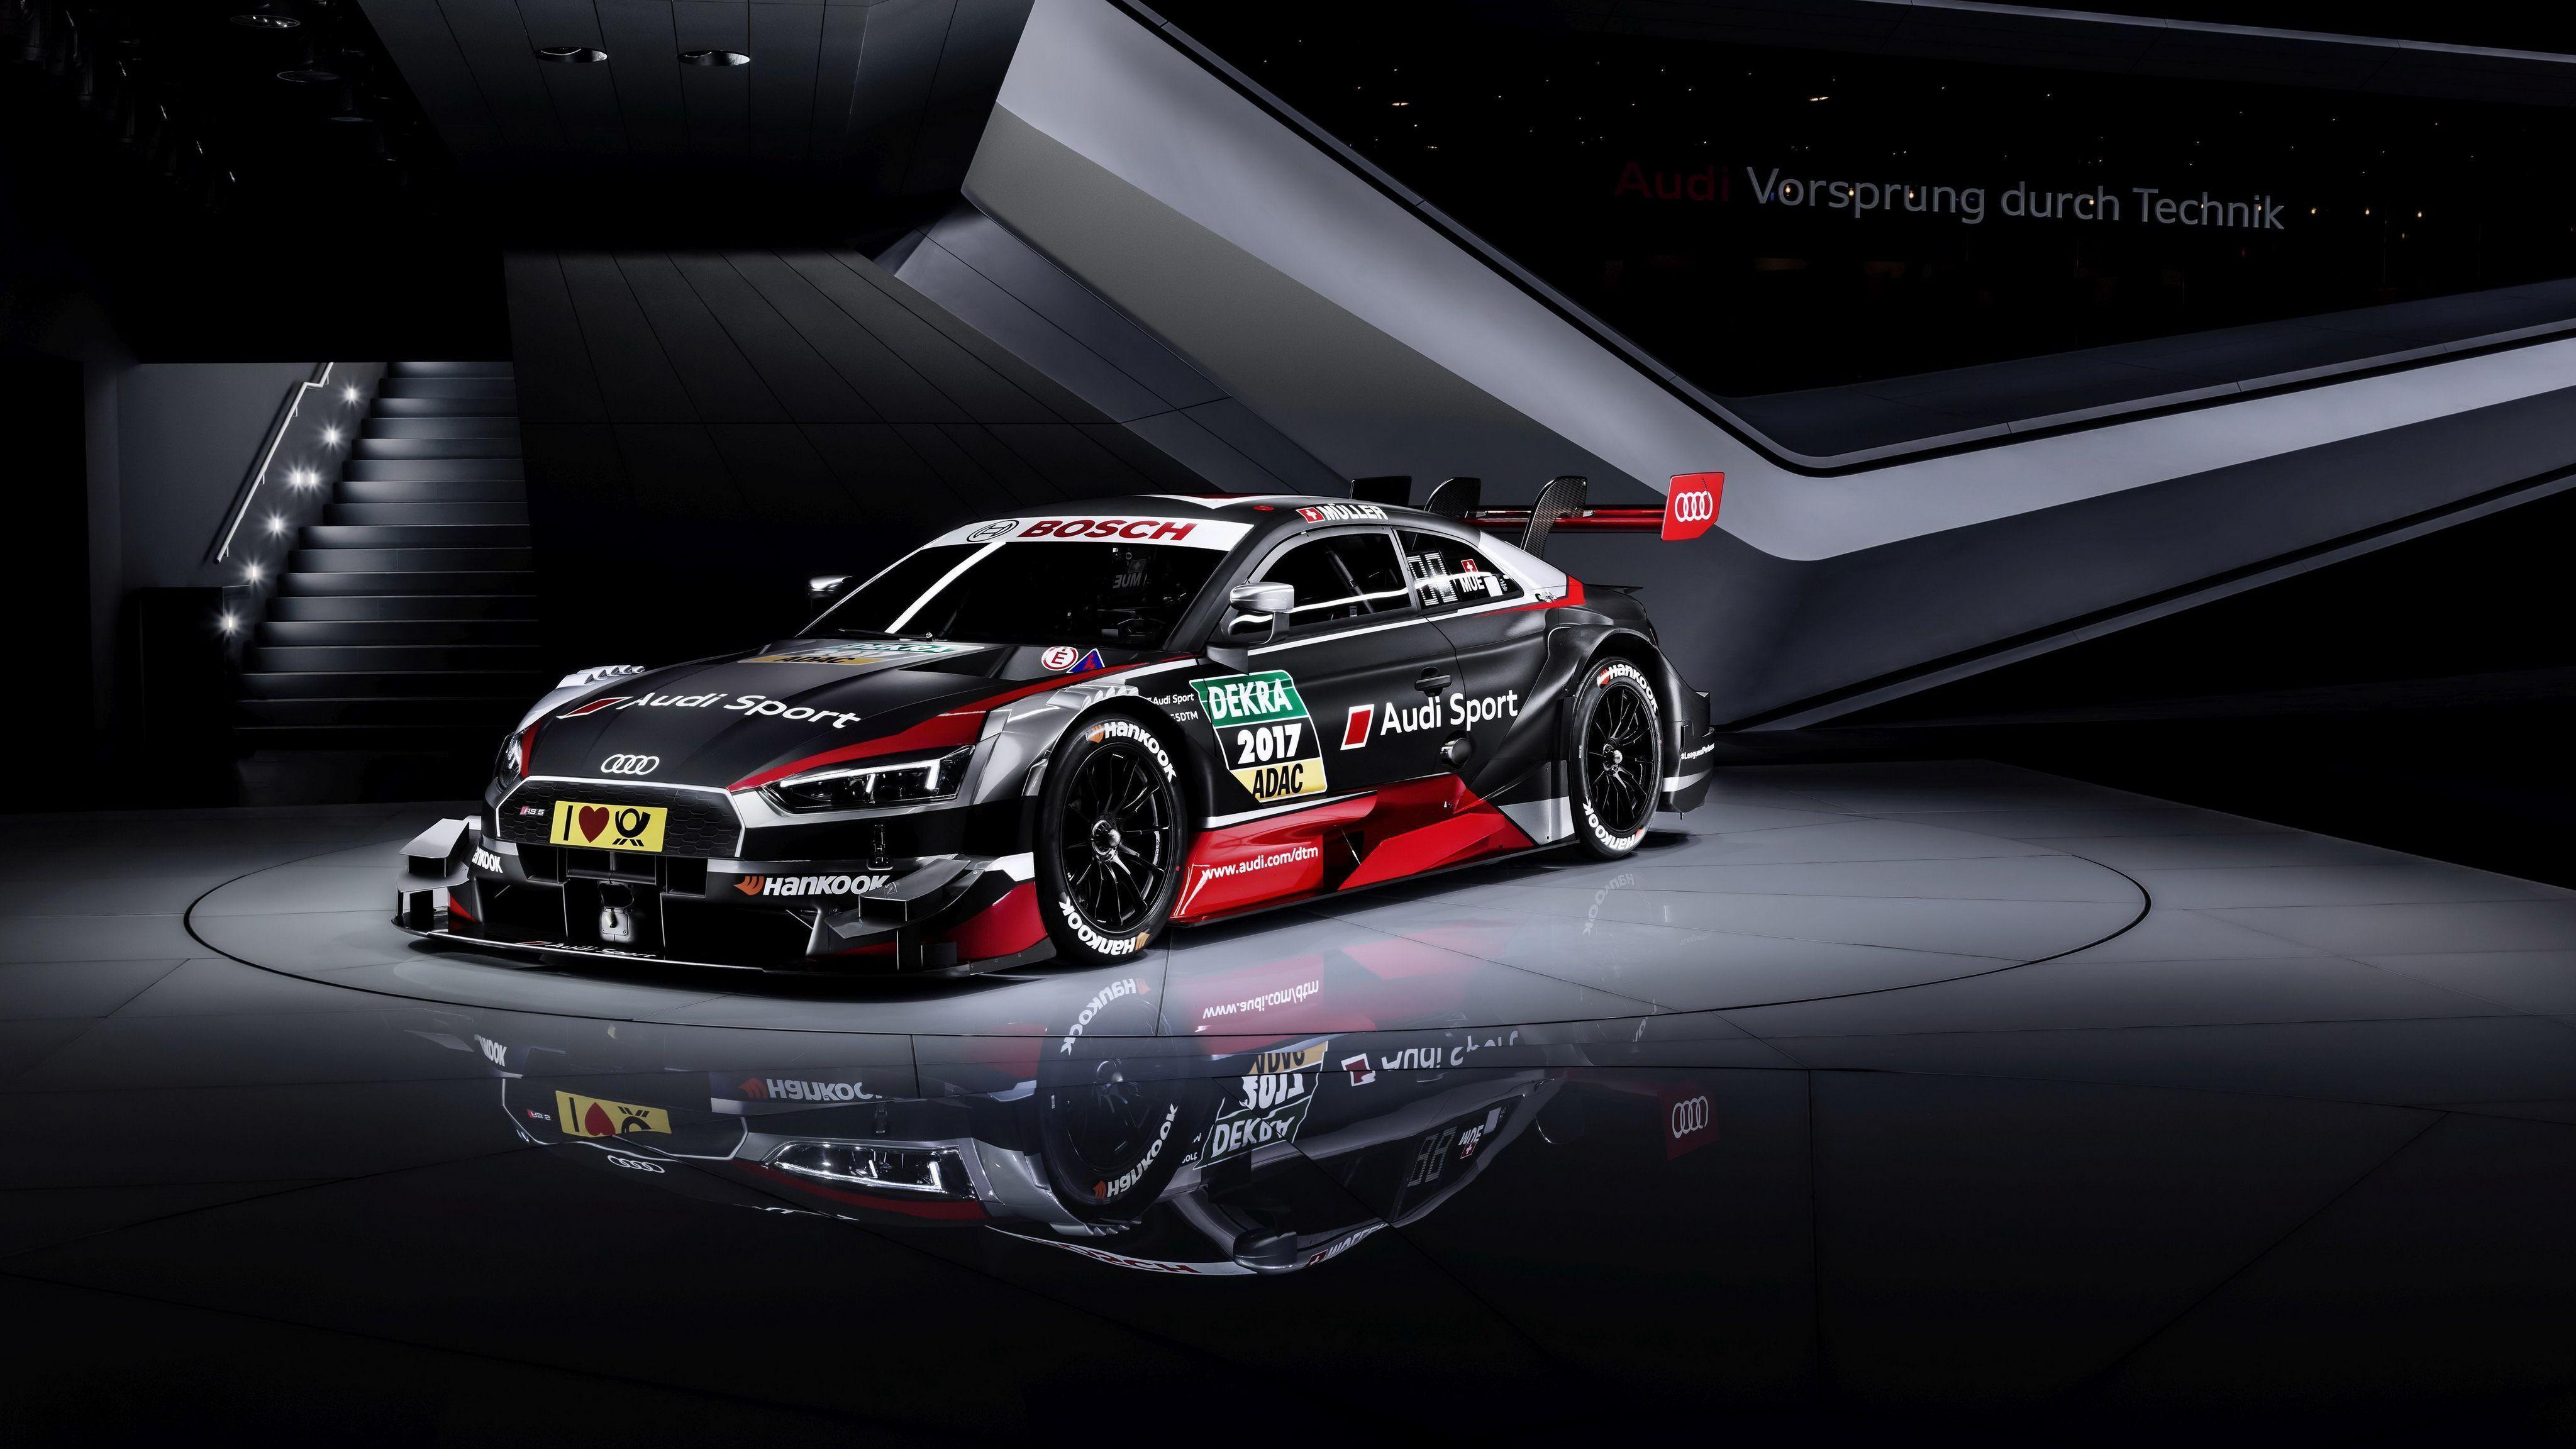 2018 Audi RS 5 Coupe DTM Wallpaper | HD Car Wallpapers